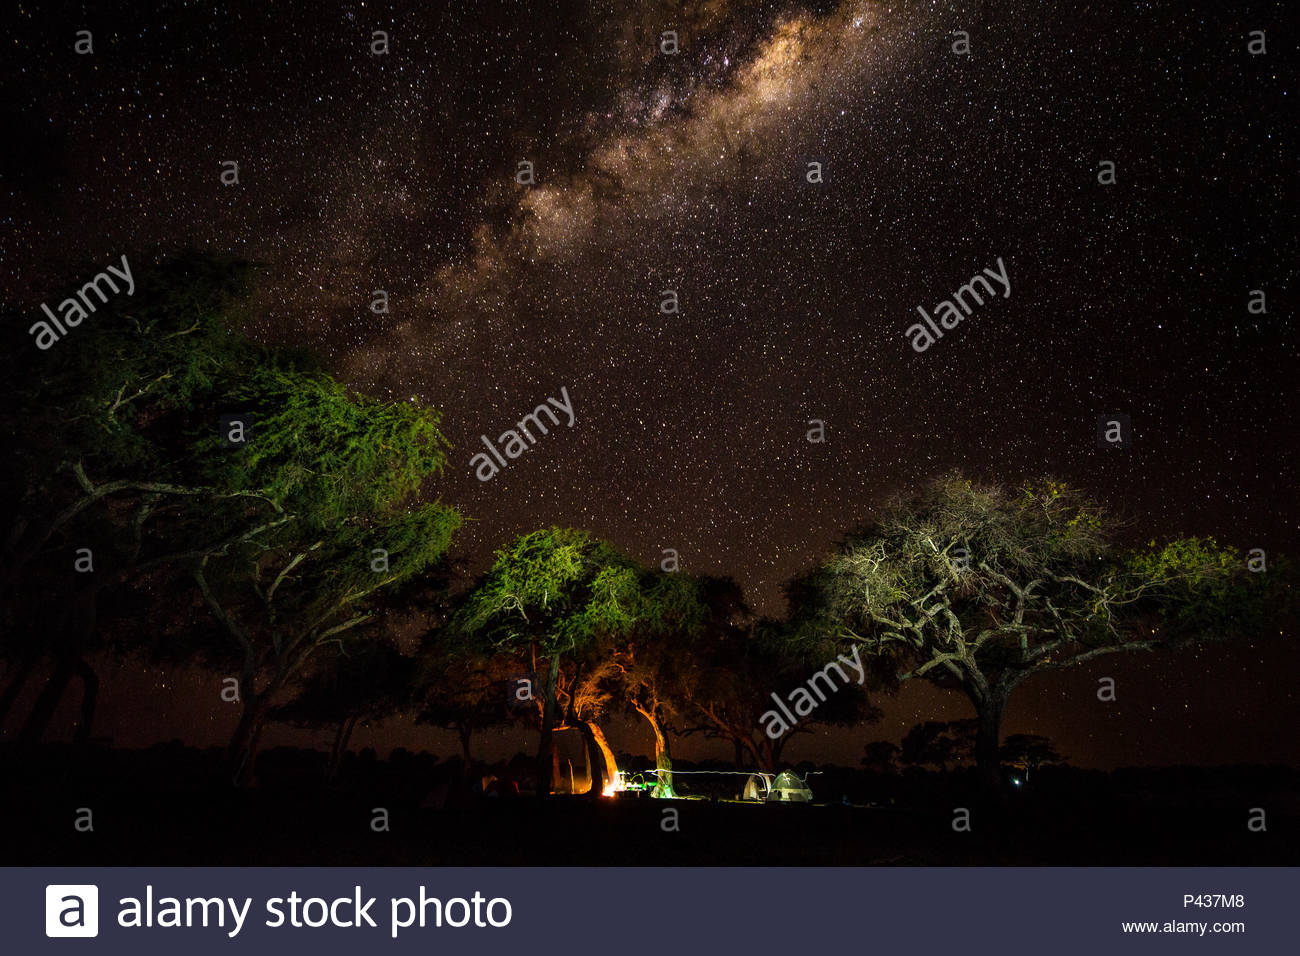 The Milky Way above an expedition campsite in the Okavango Delta. Stock Photo